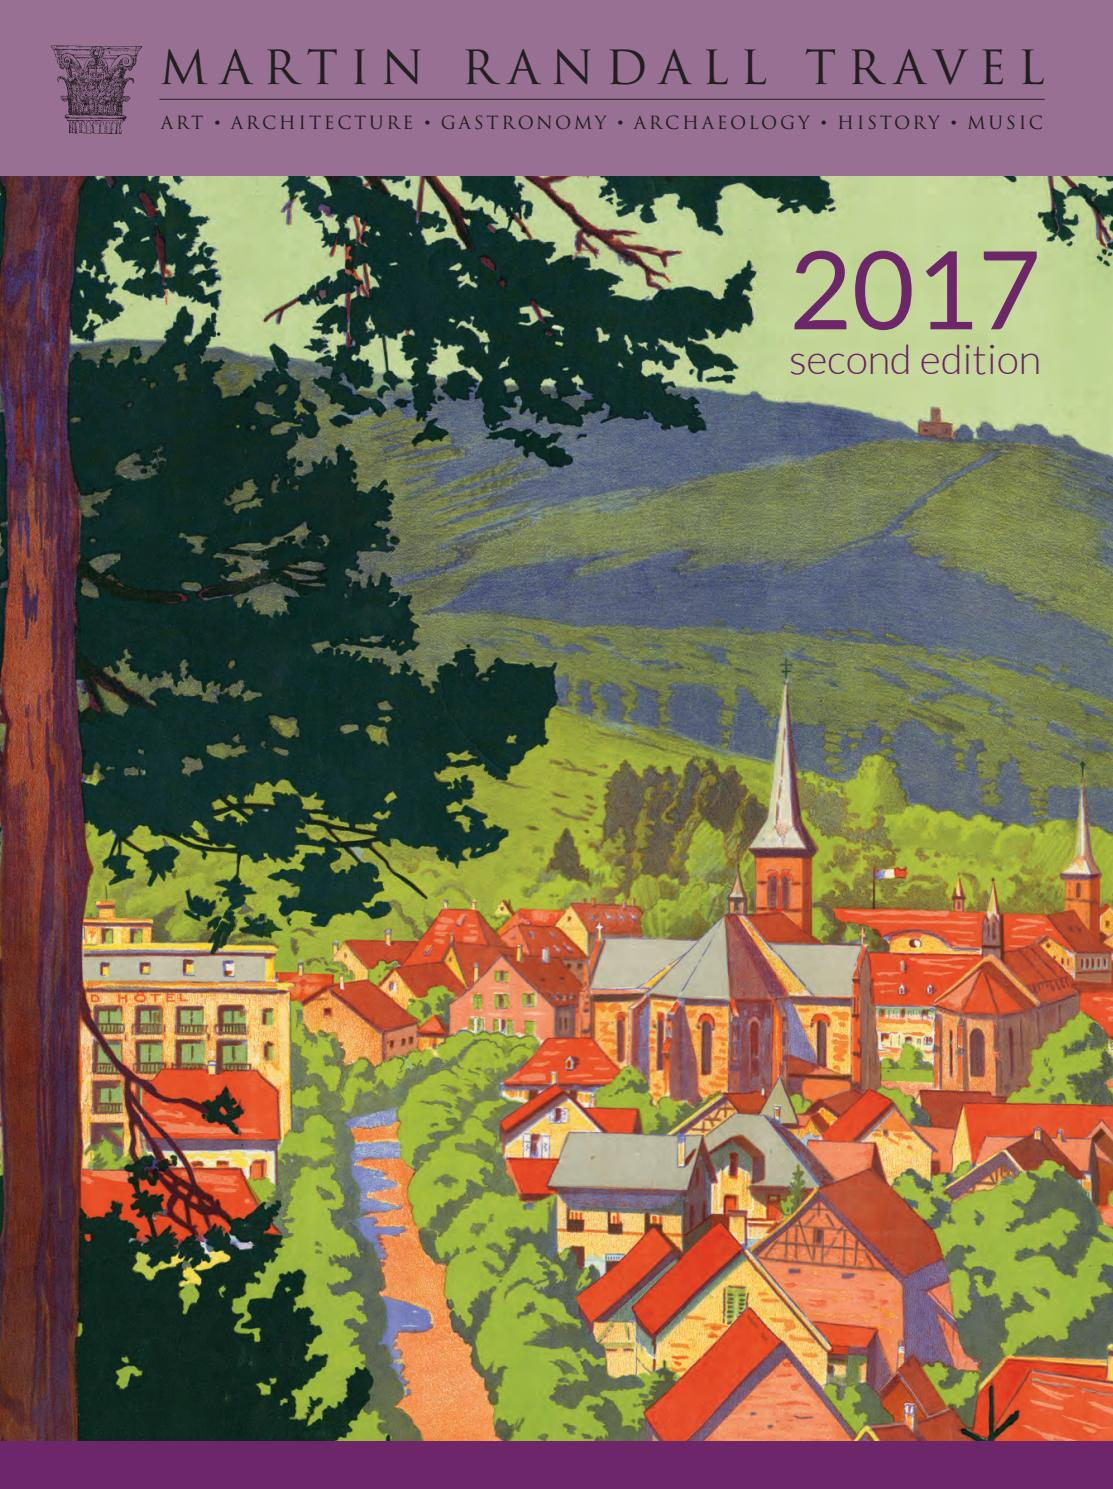 Martin Randall Travel 2017 2nd Edition By Martin Randall Travel Issuu